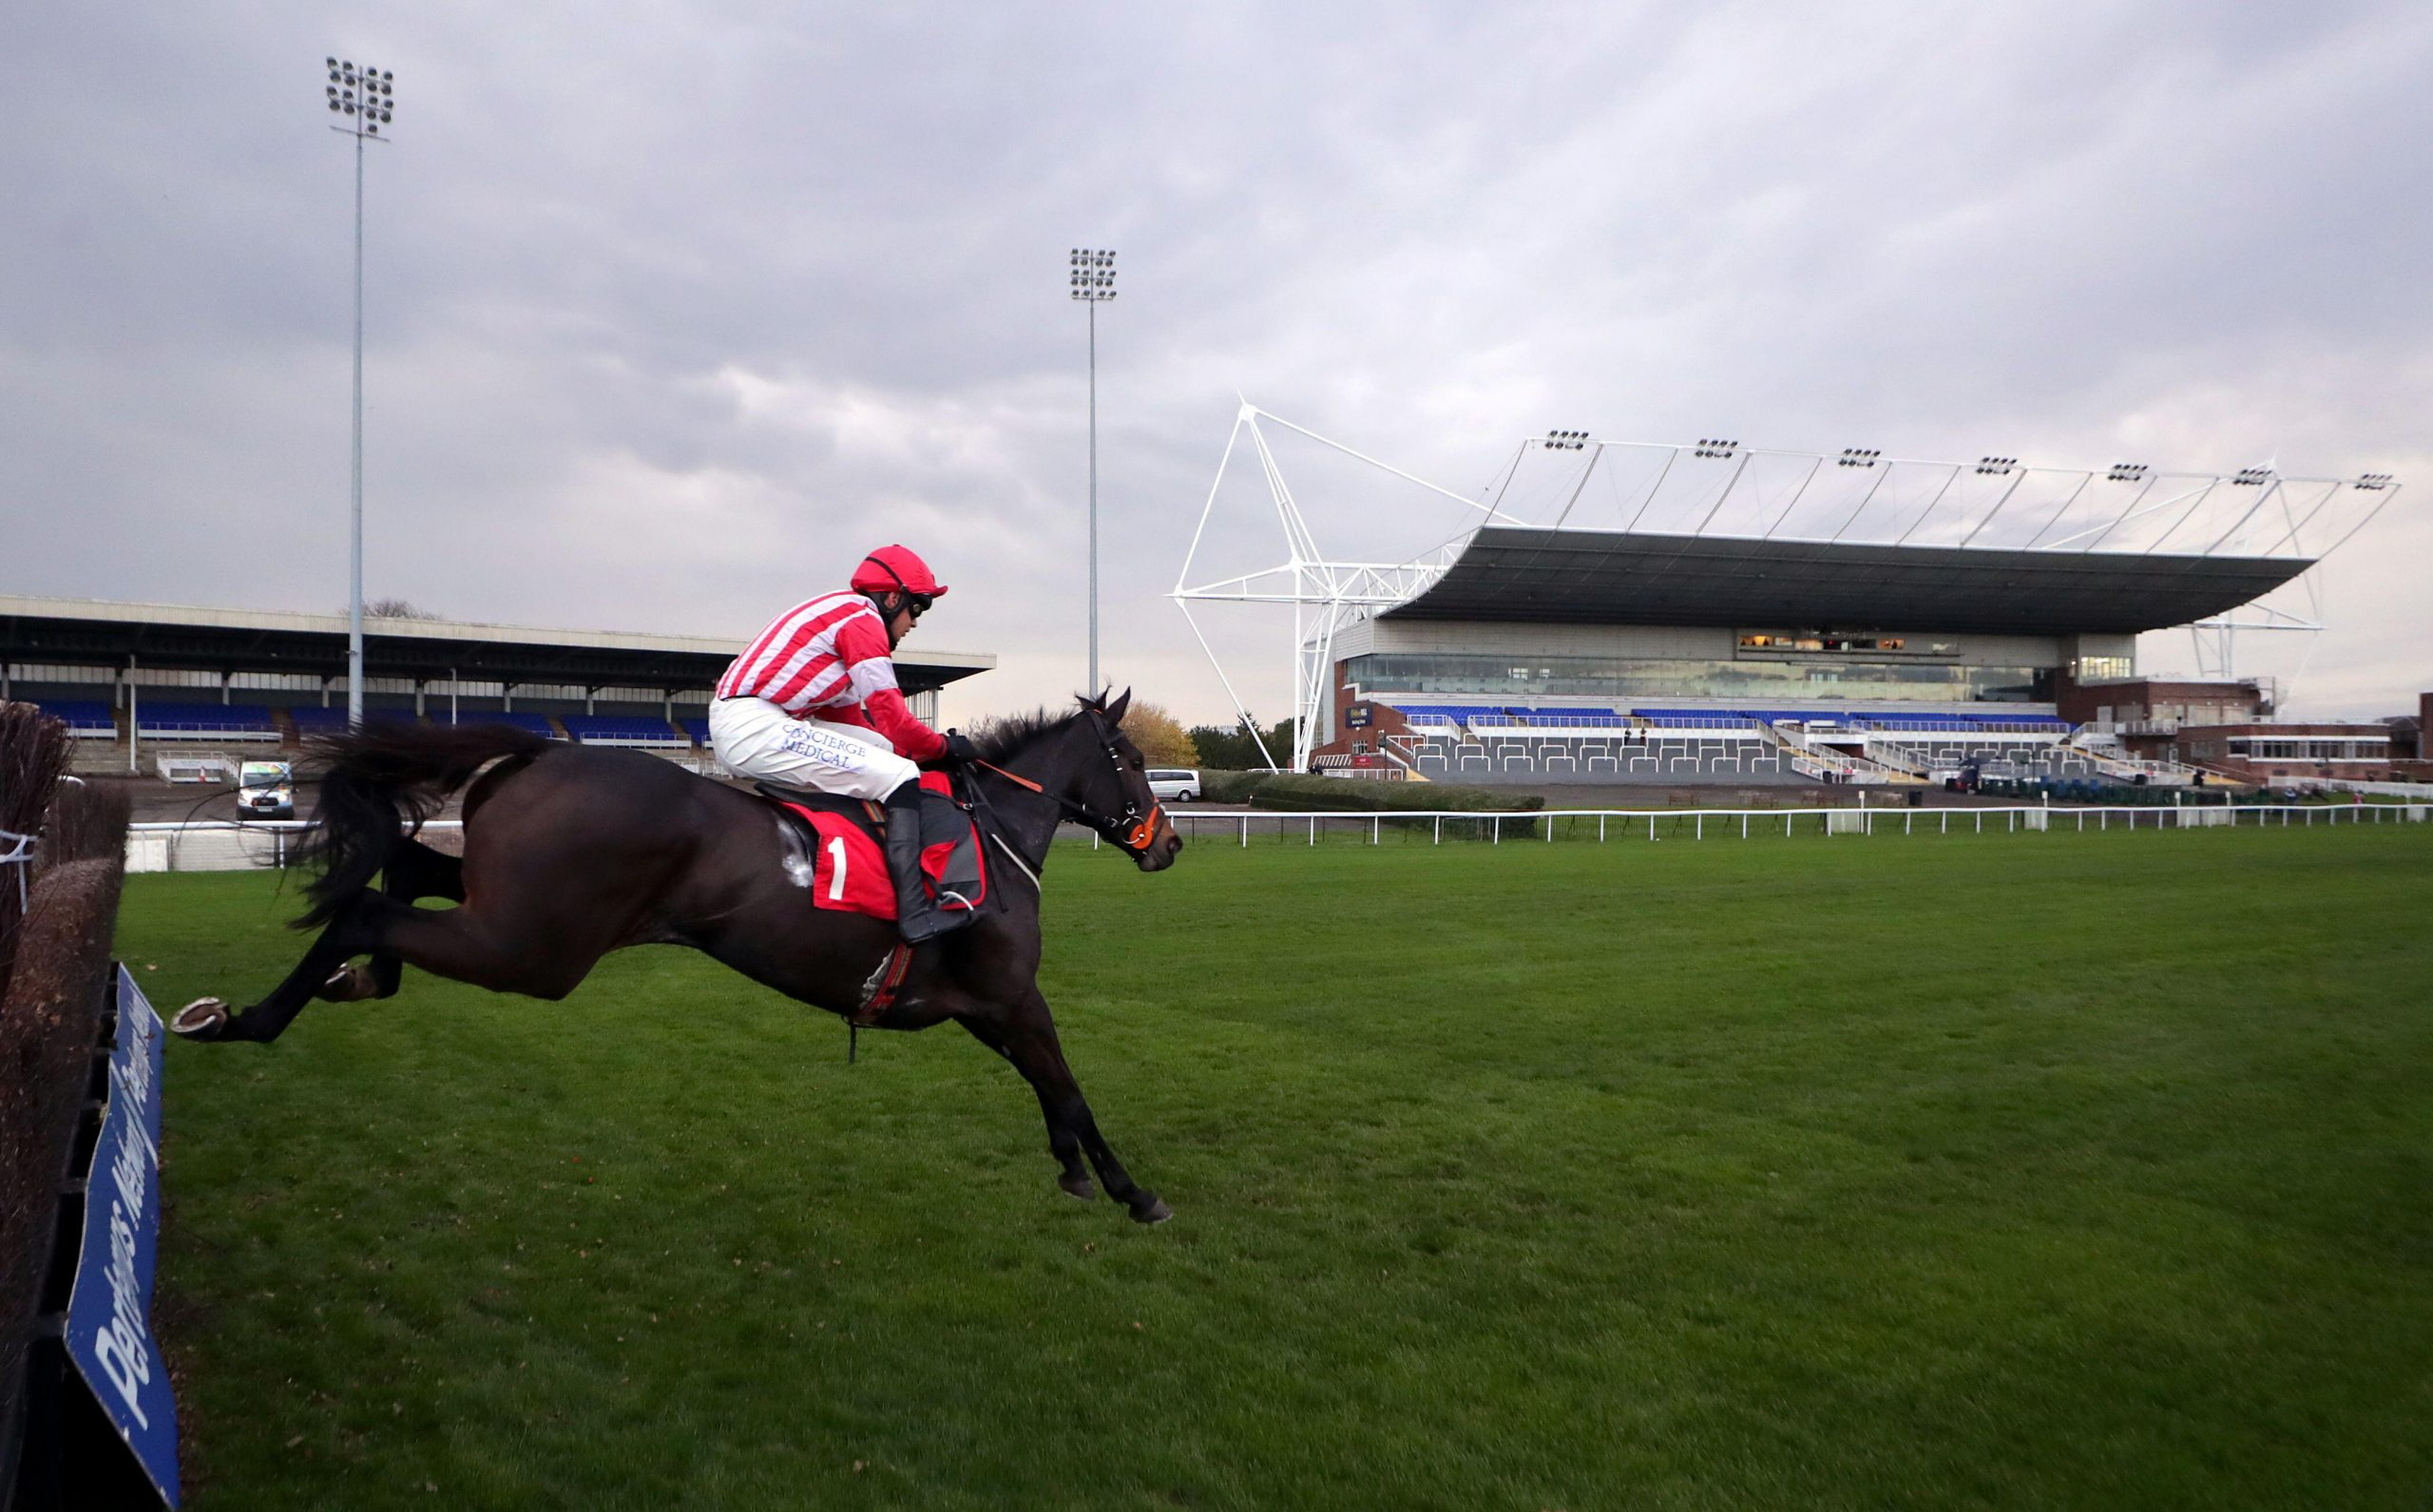 Oscar Rose ridden by jockey Liam Harrison clears a fence on the way to winning the Weatherbys TBA Mares' Handicap Chase (Challenger Mares' Chase Series Qualifier) at Kempton Park Racecourse.